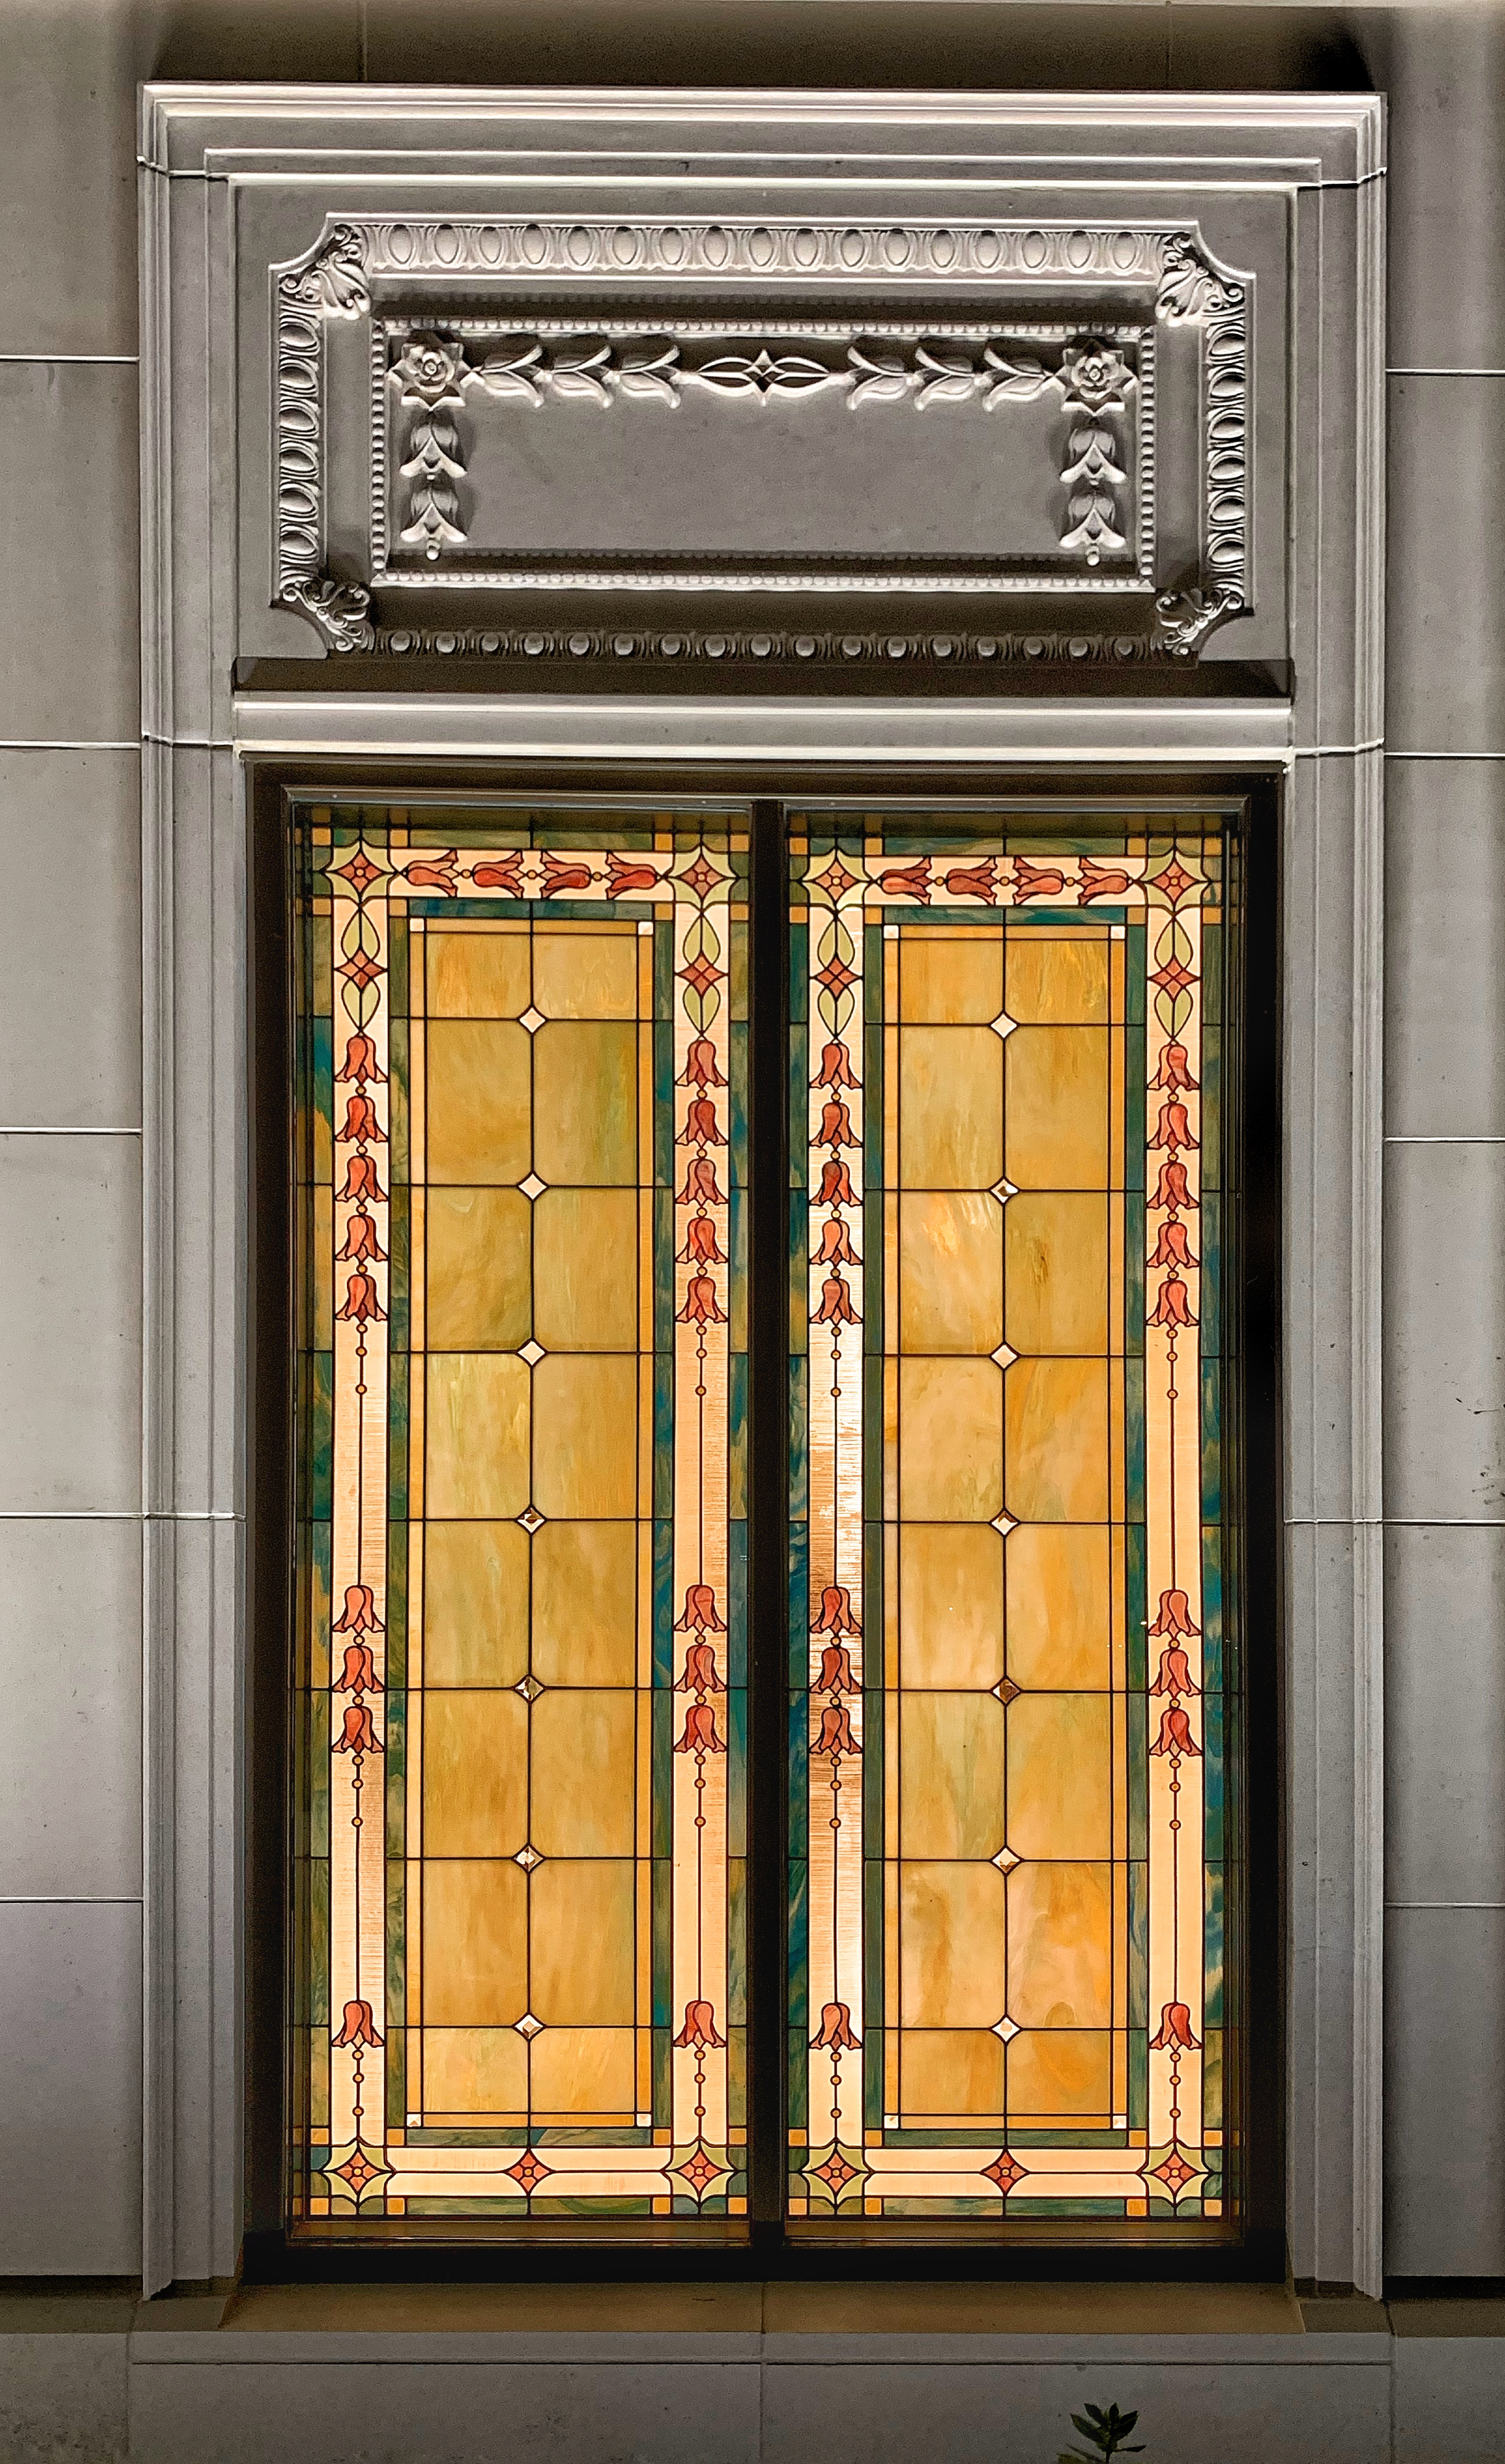 A view of the custom windows on the recently renovated Memphis Tennessee Temple seen from the outside at night. The windows feature the pawpaw flower.